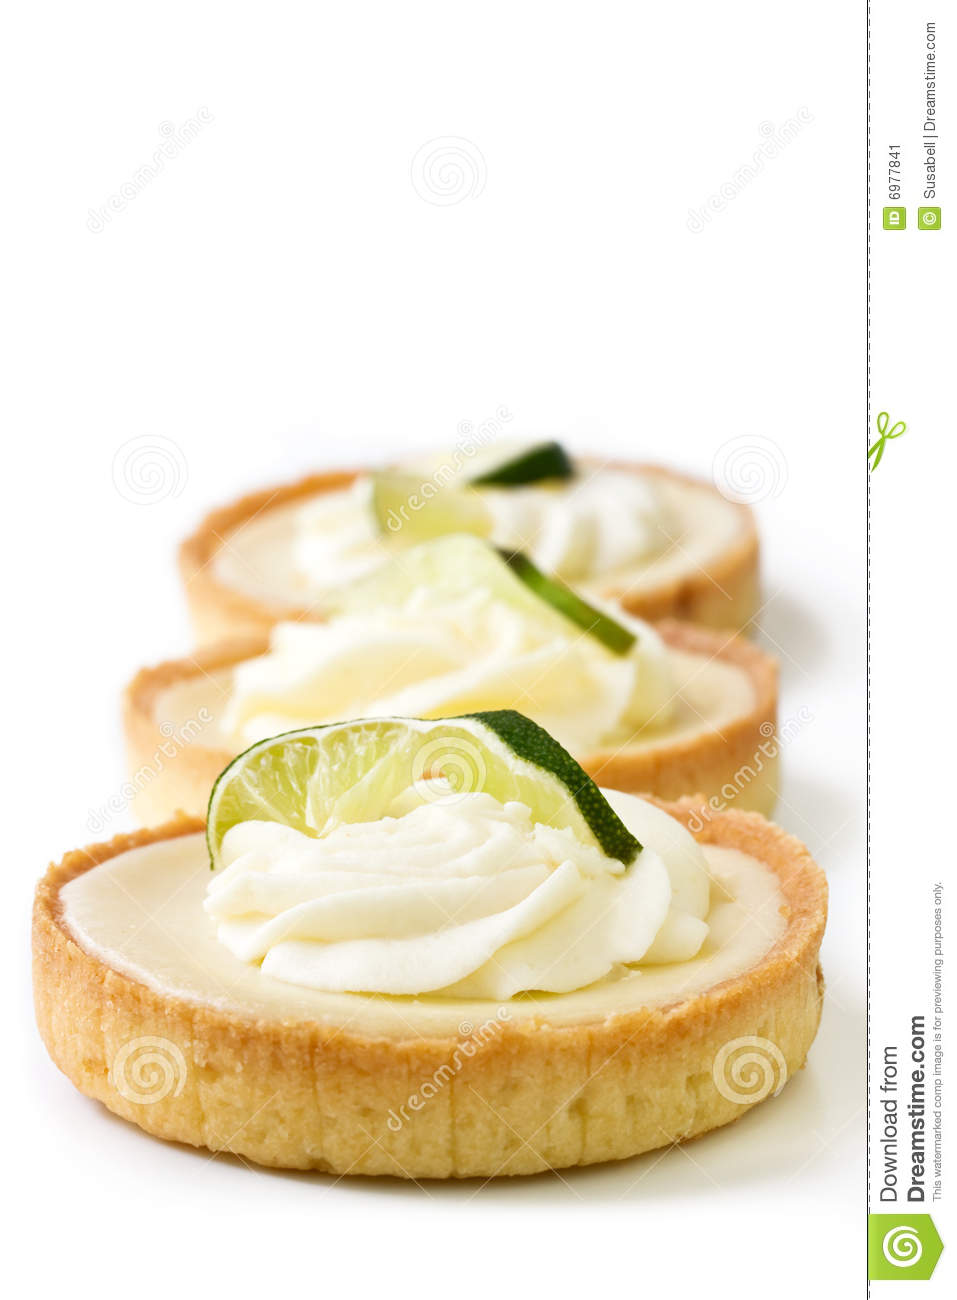 Key Lime Tart Stock Image - Image: 6977841